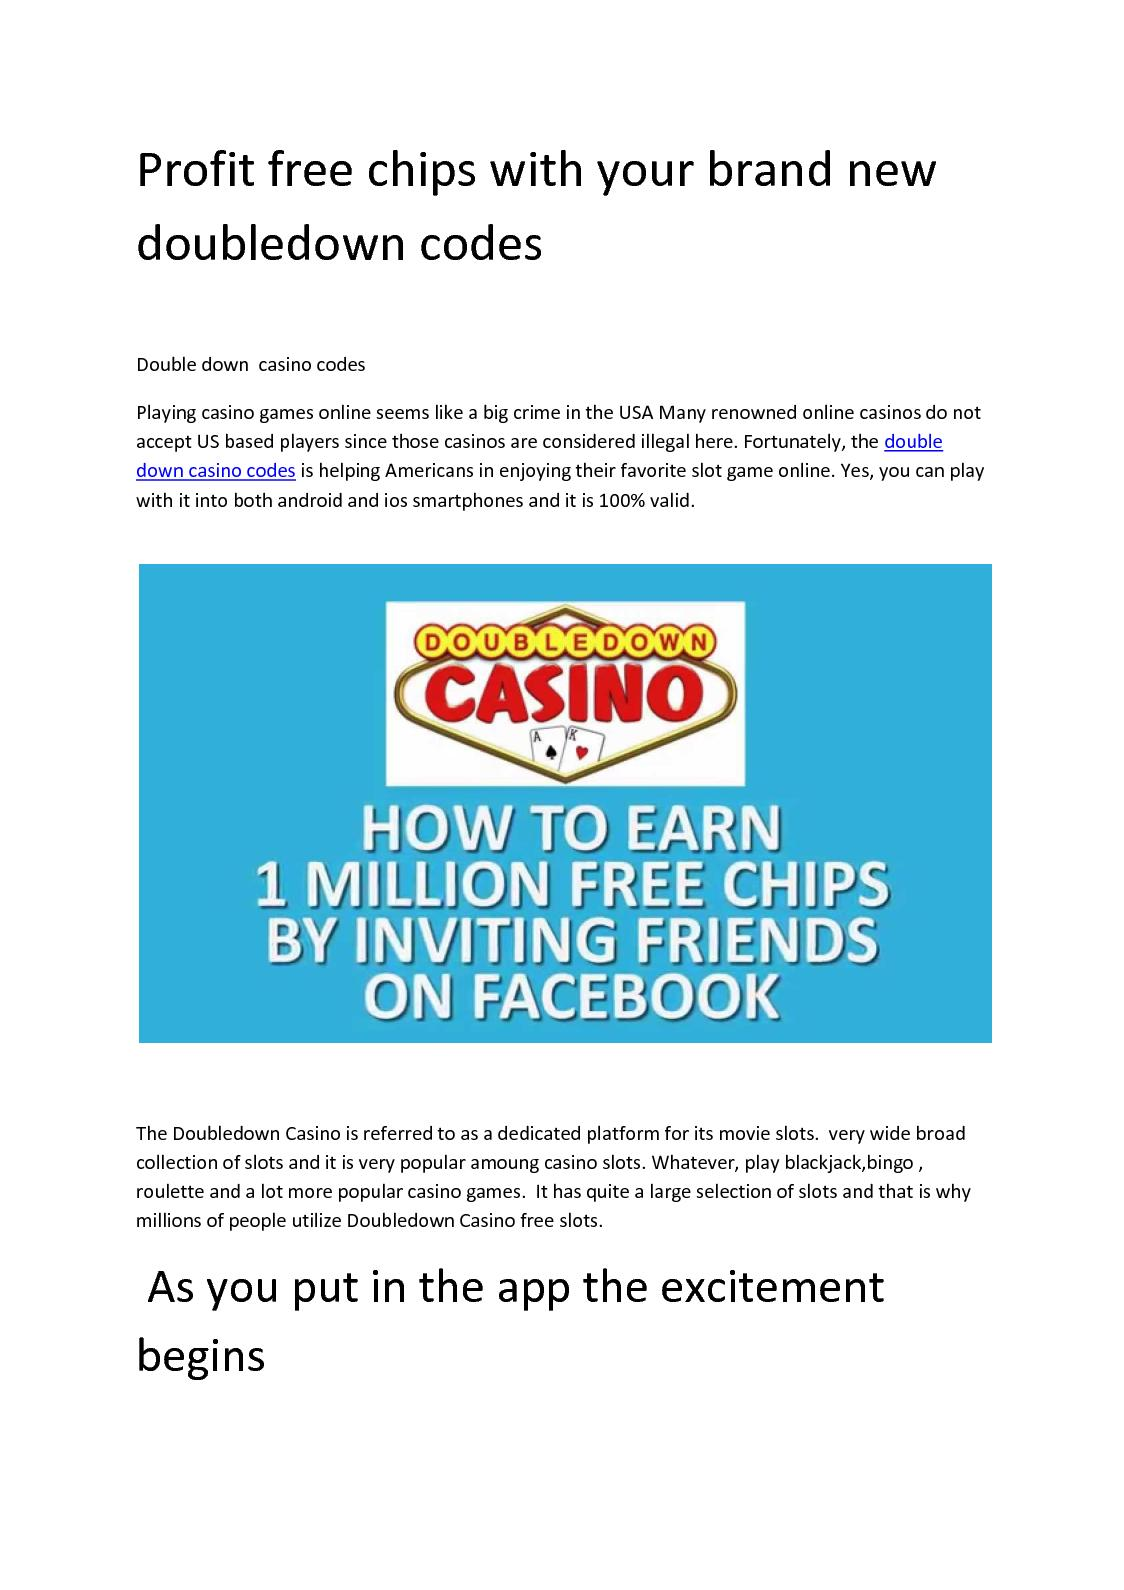 Calameo How To Get Latest Double Down Promo Codes